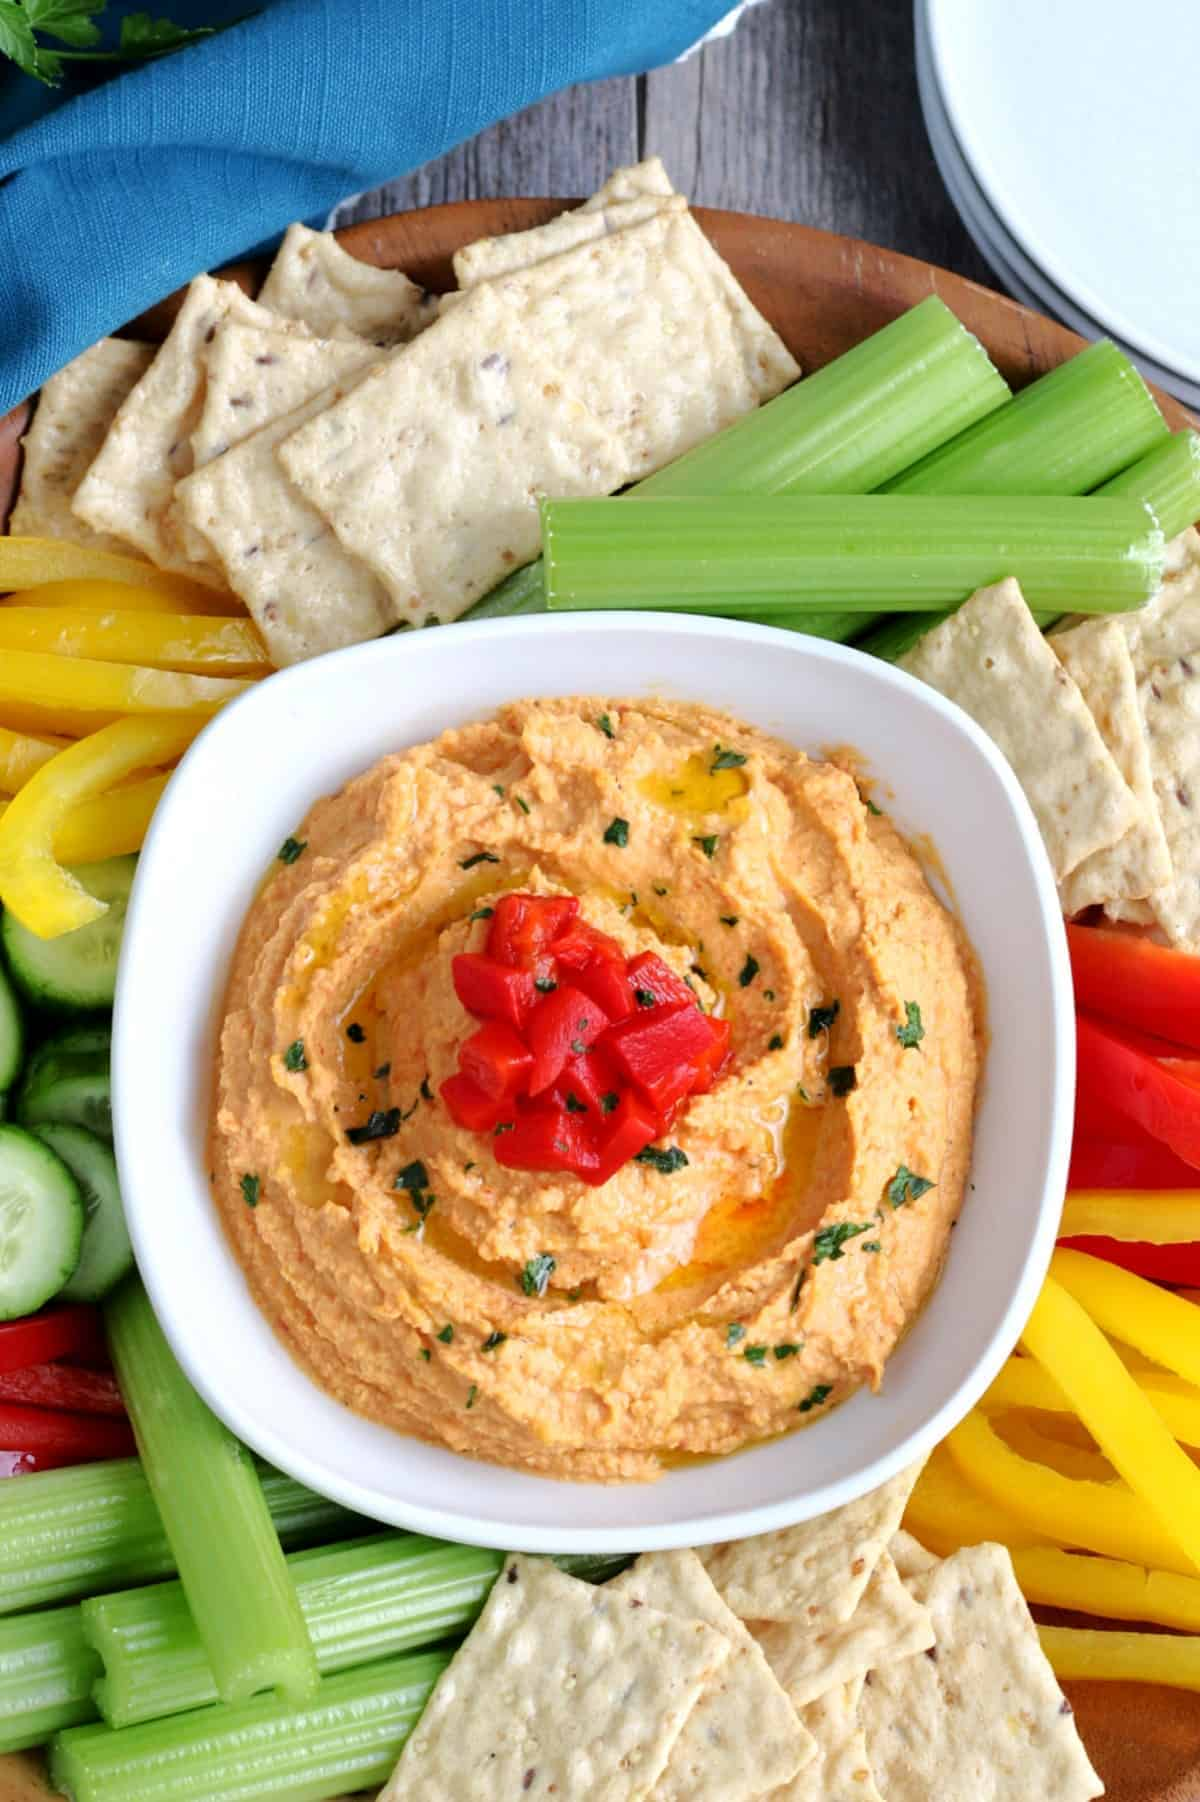 Overhead view of roasted red pepper hummus with veggies and crackers surrounding it.